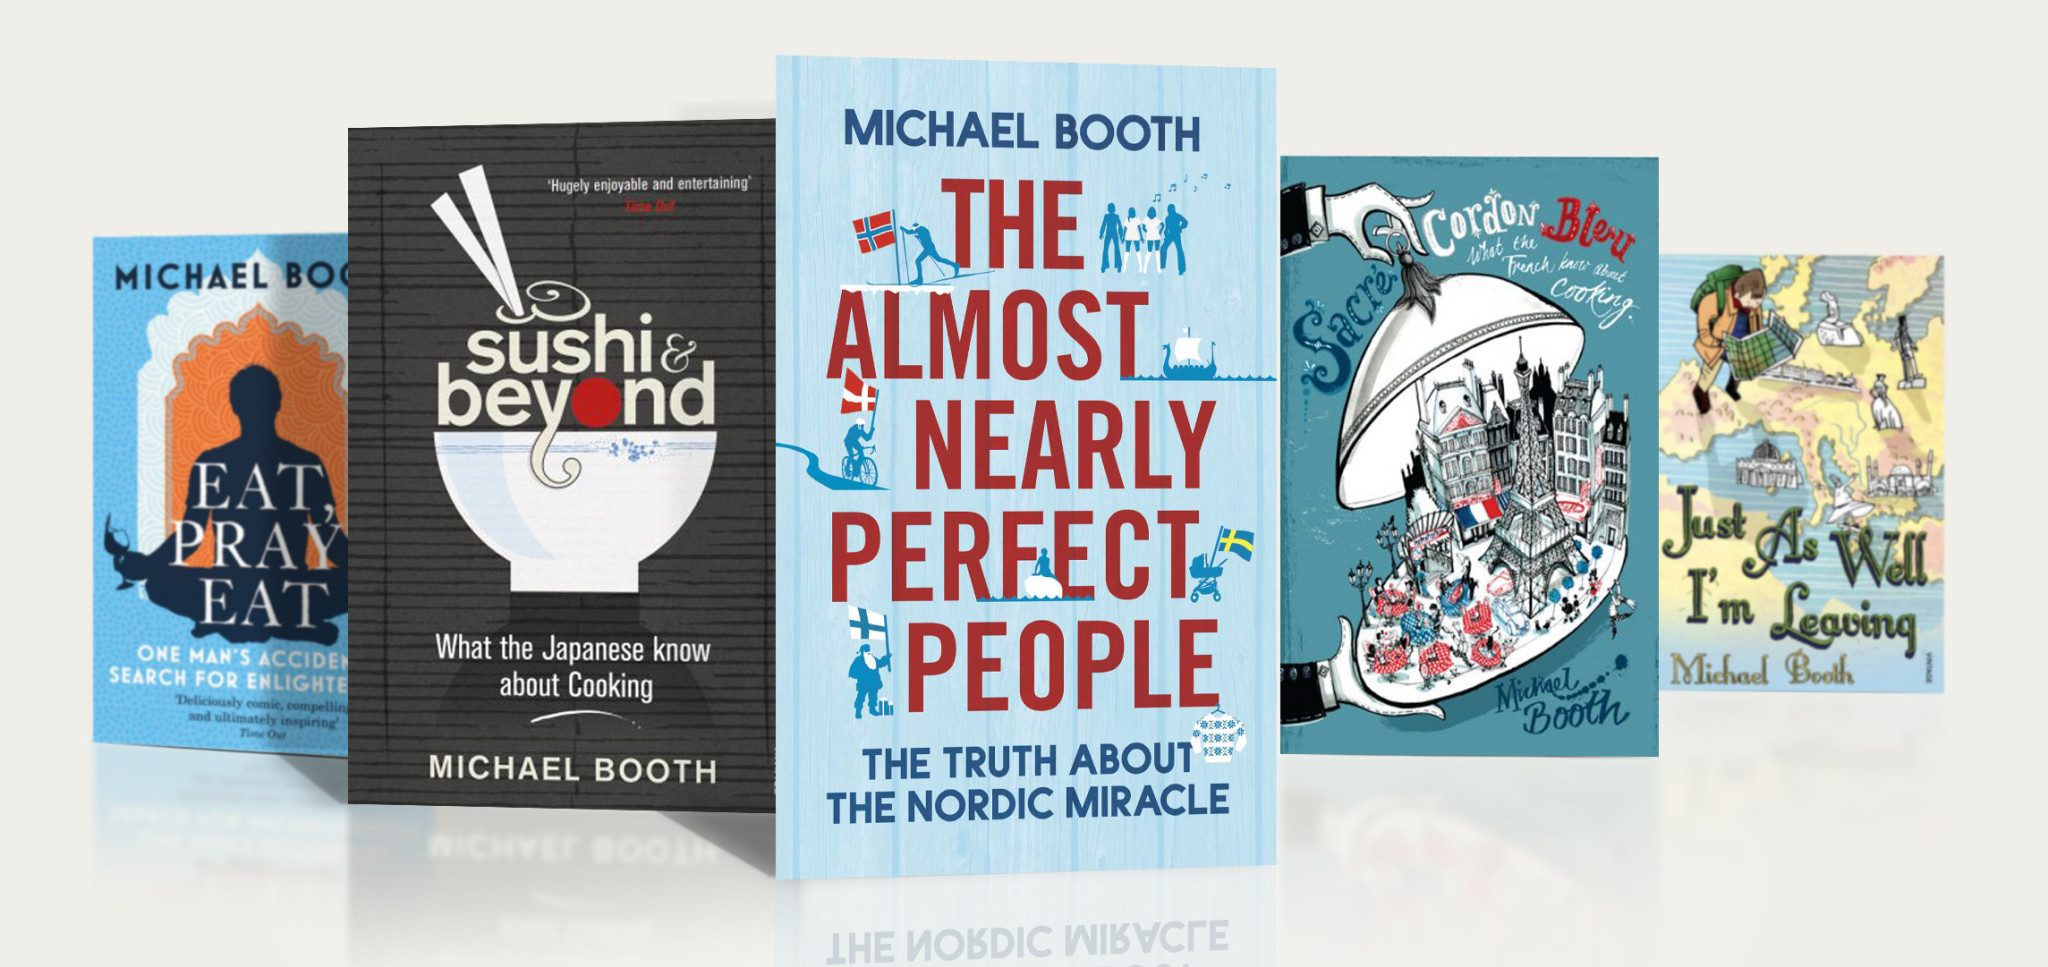 About Michael Booth